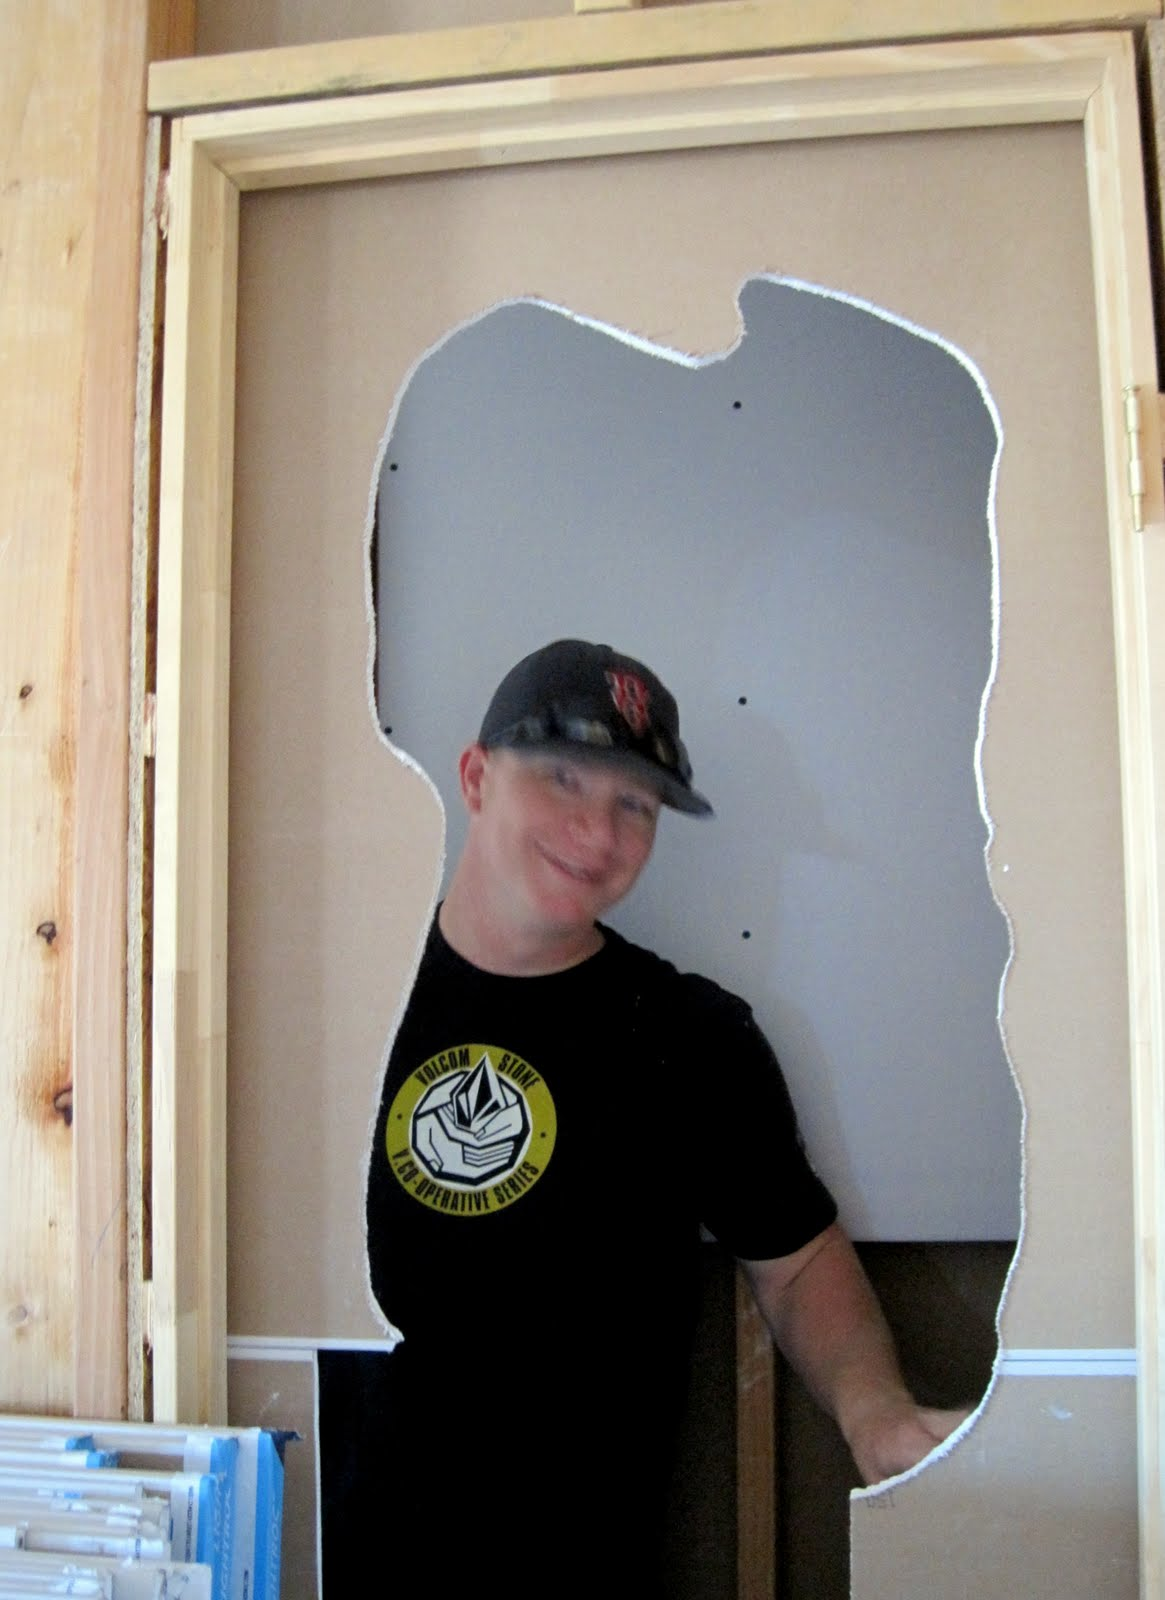 Rembolds on the Road: HABITAT BUILD IN LAS CRUCES, NM